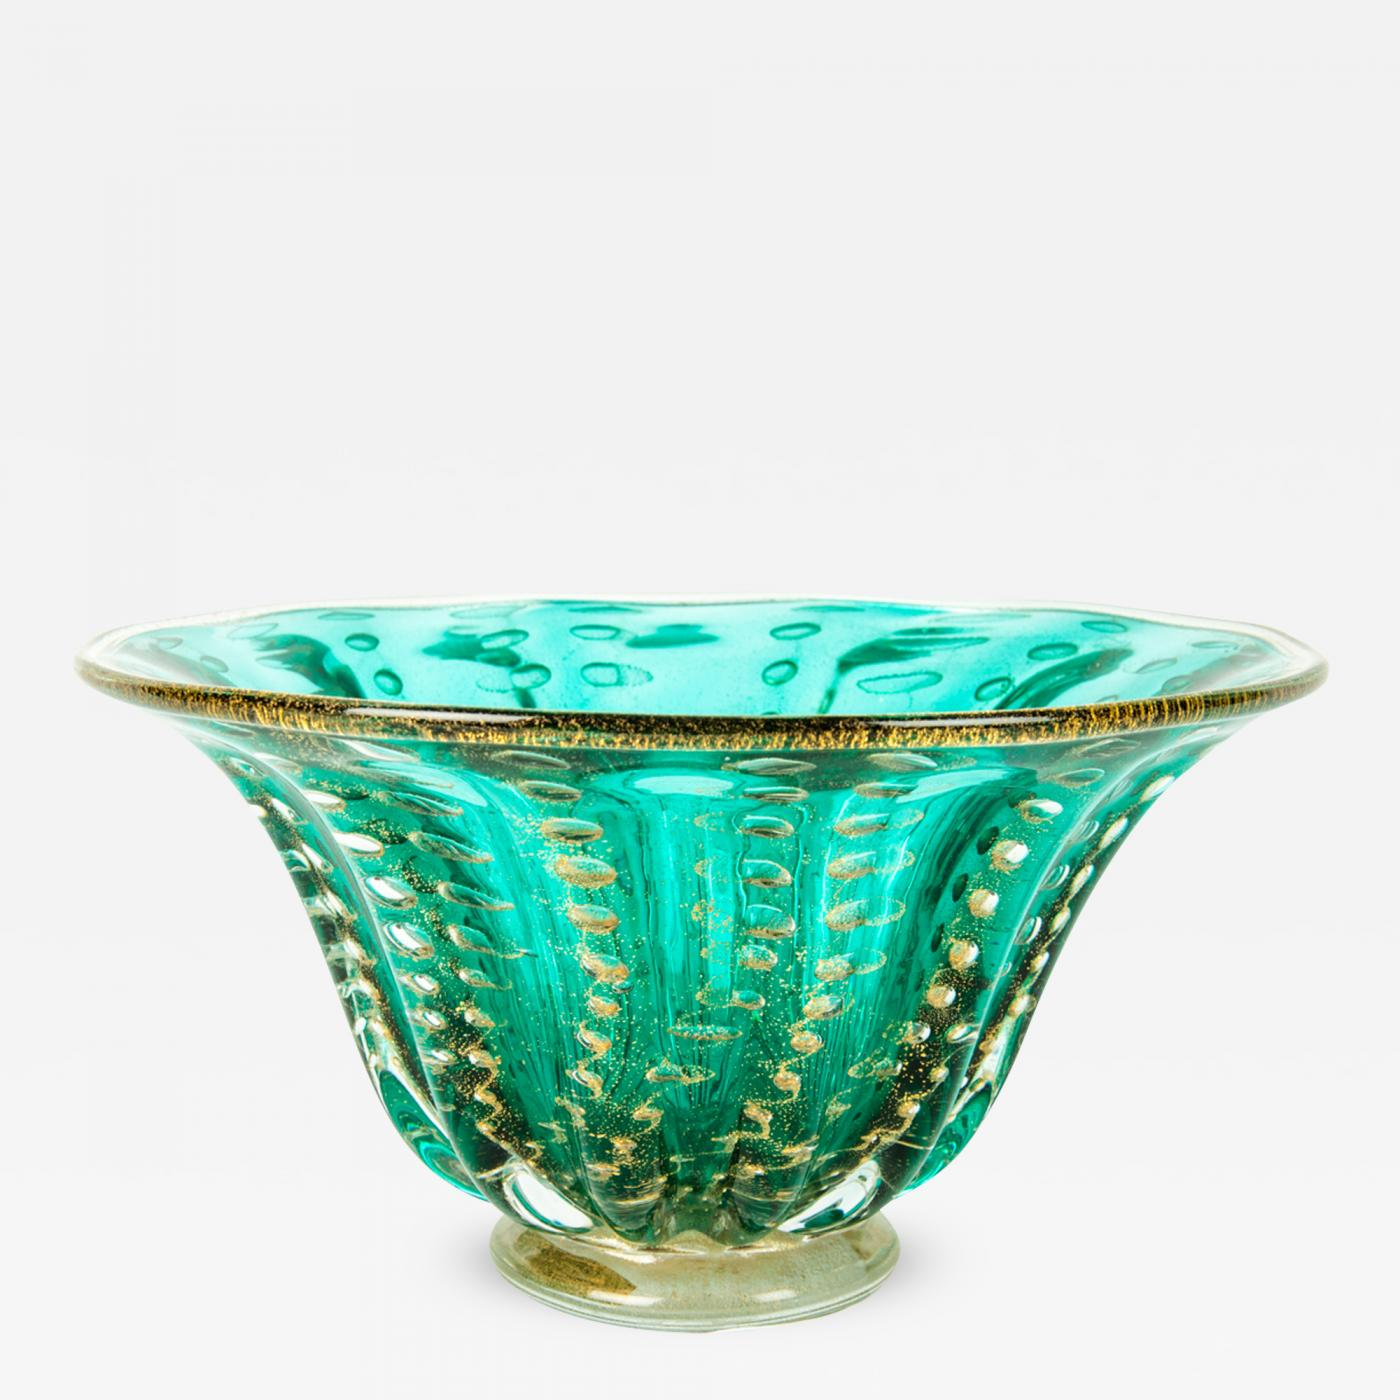 Mid 20th Century Murano Glass Decorative Bowl Piece